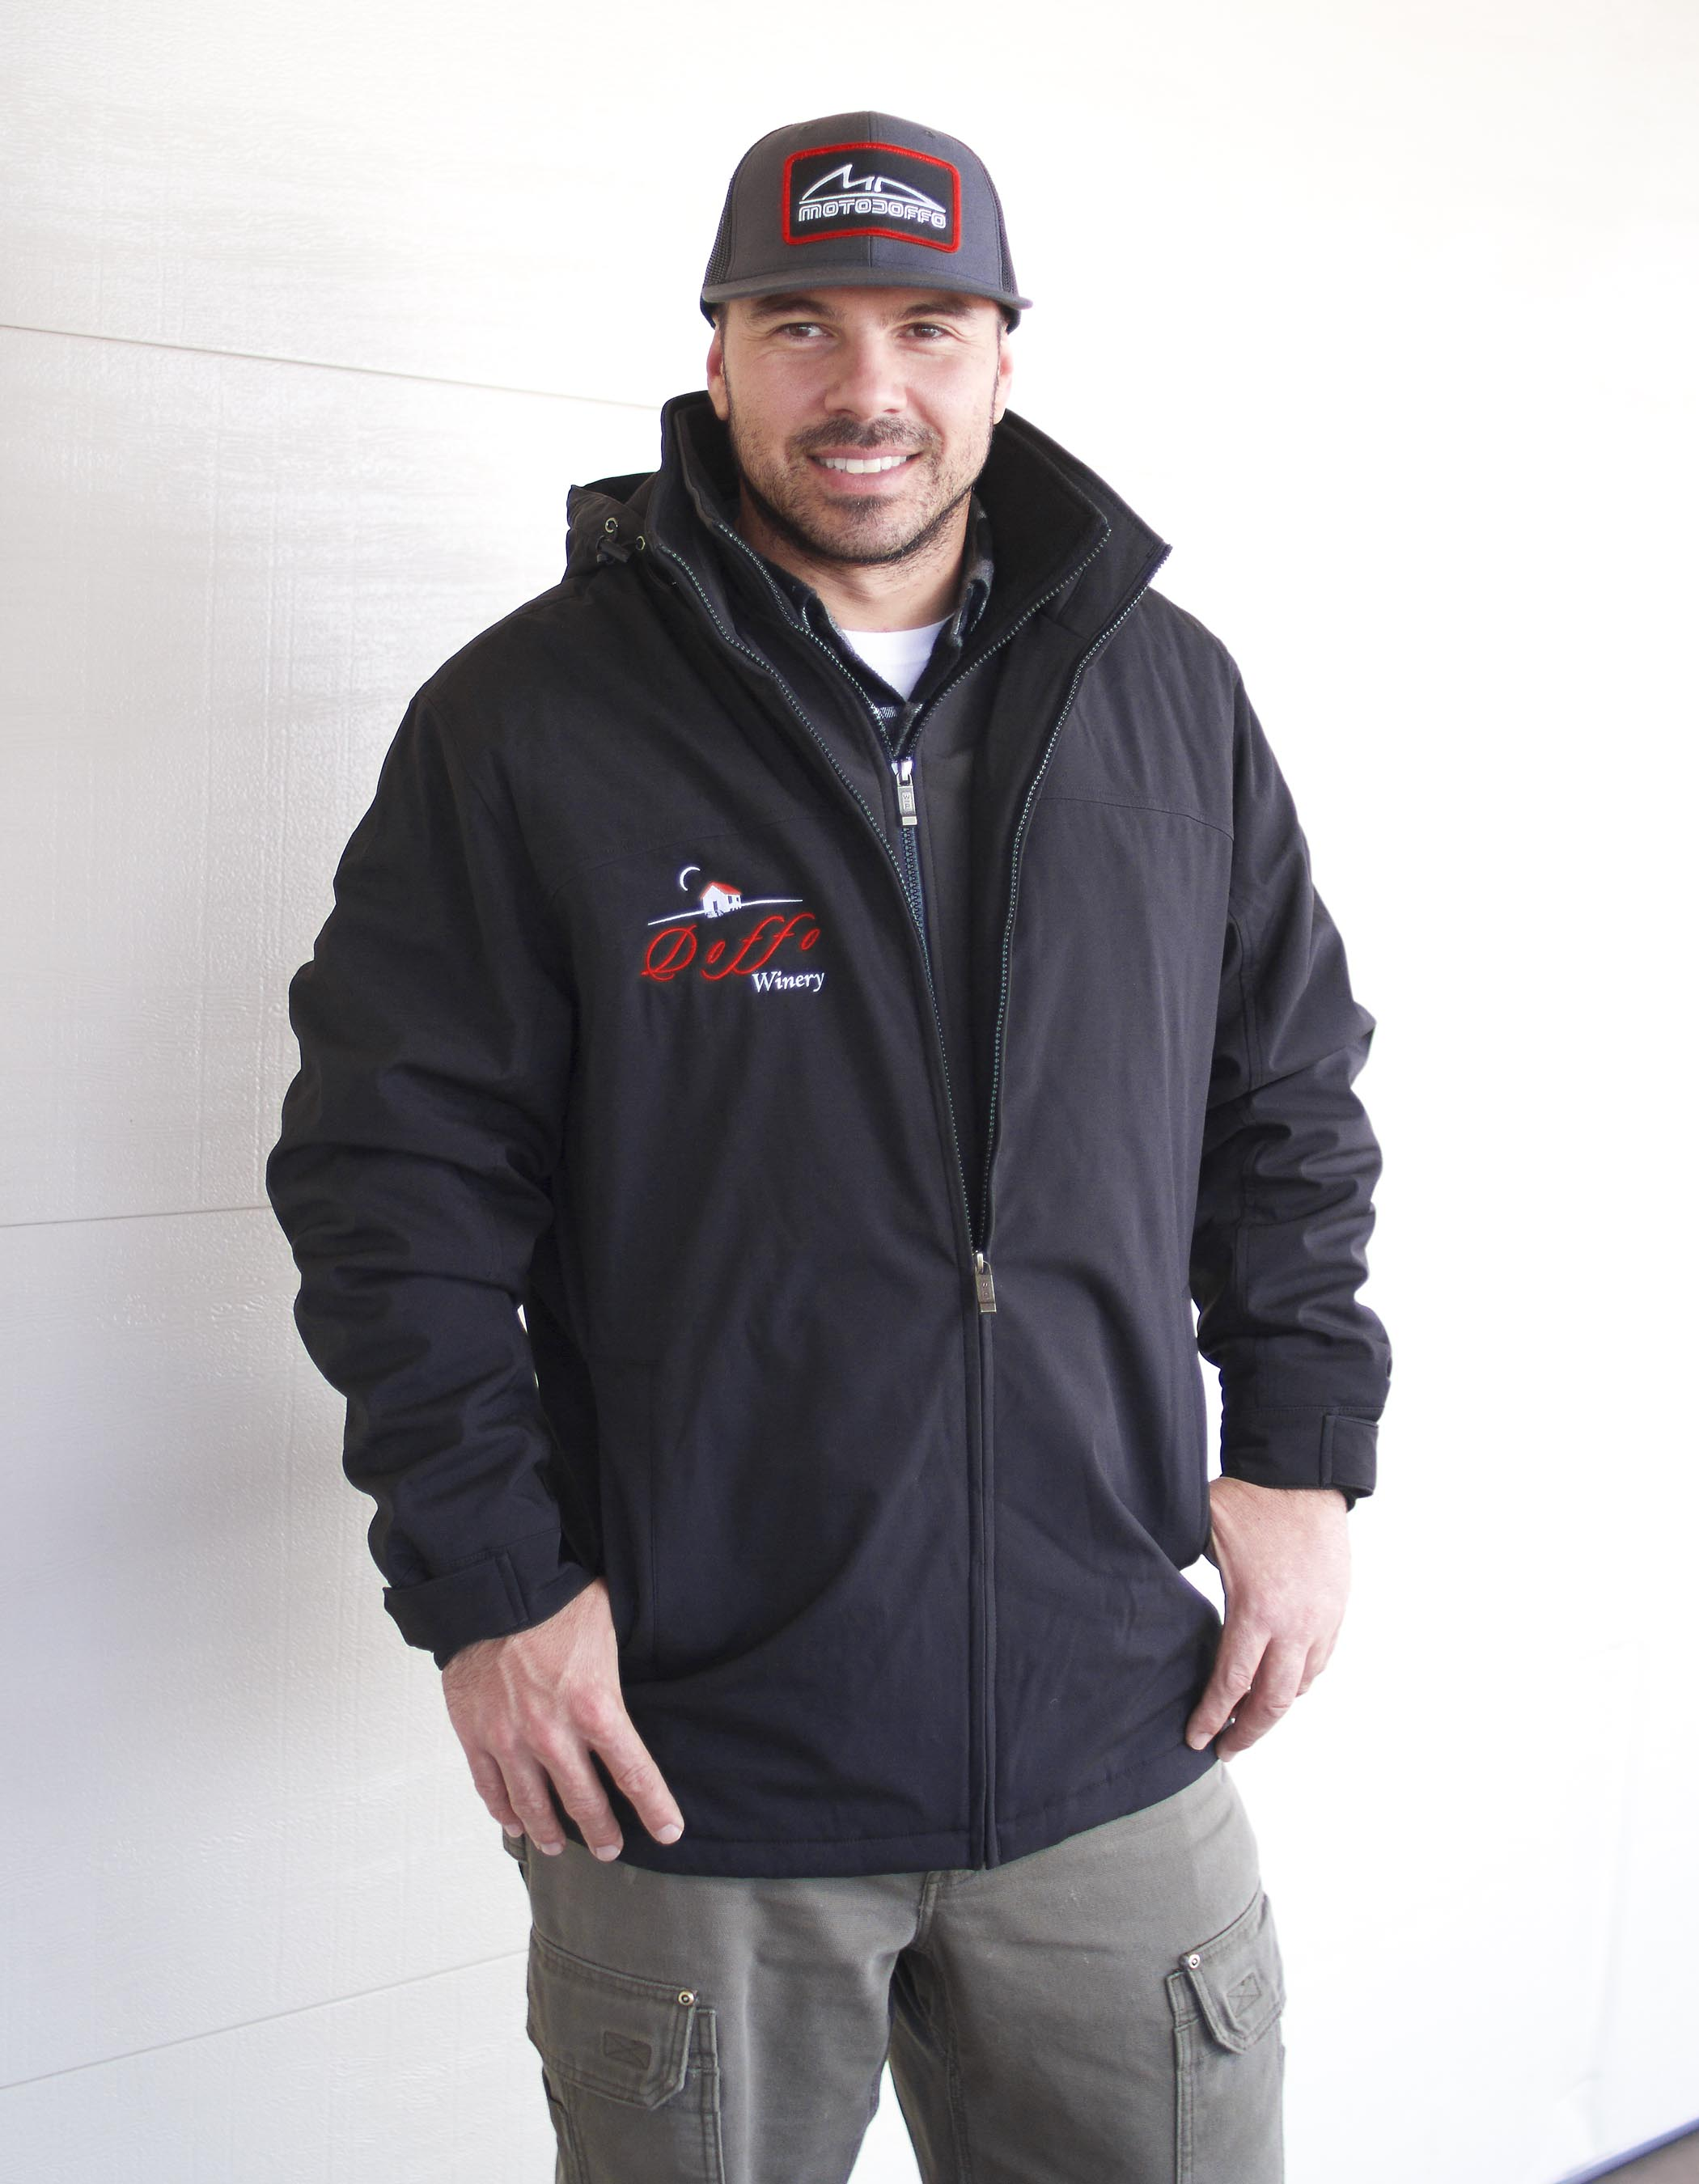 Doffo Weatherproof Jacket Mini-Thumbnail